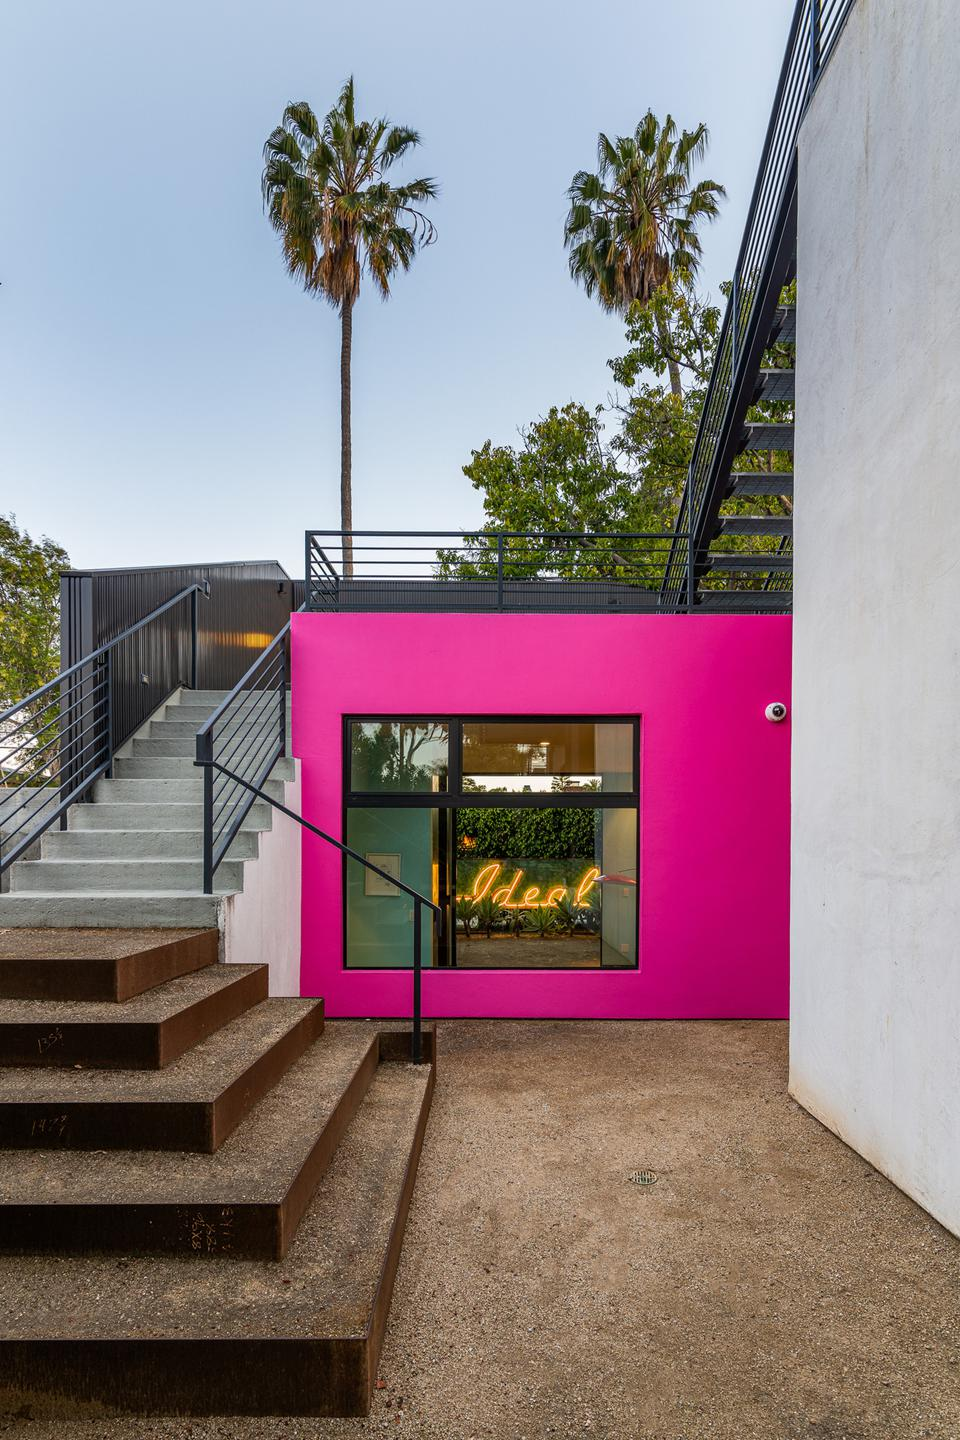 rear studio staircase todd piccus invader house venice beach 813 palms